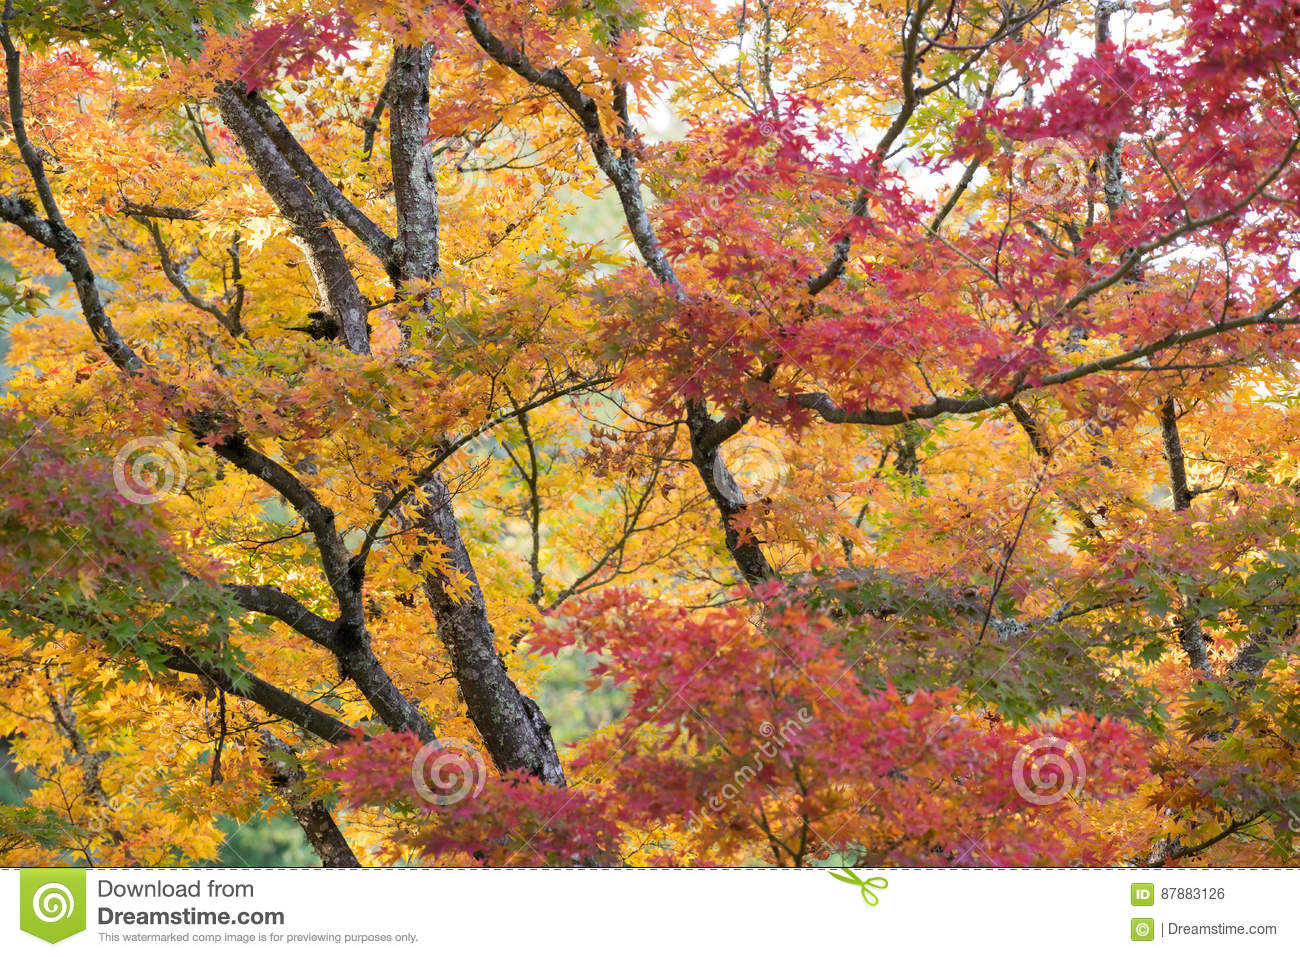 Maple trees in late fall color